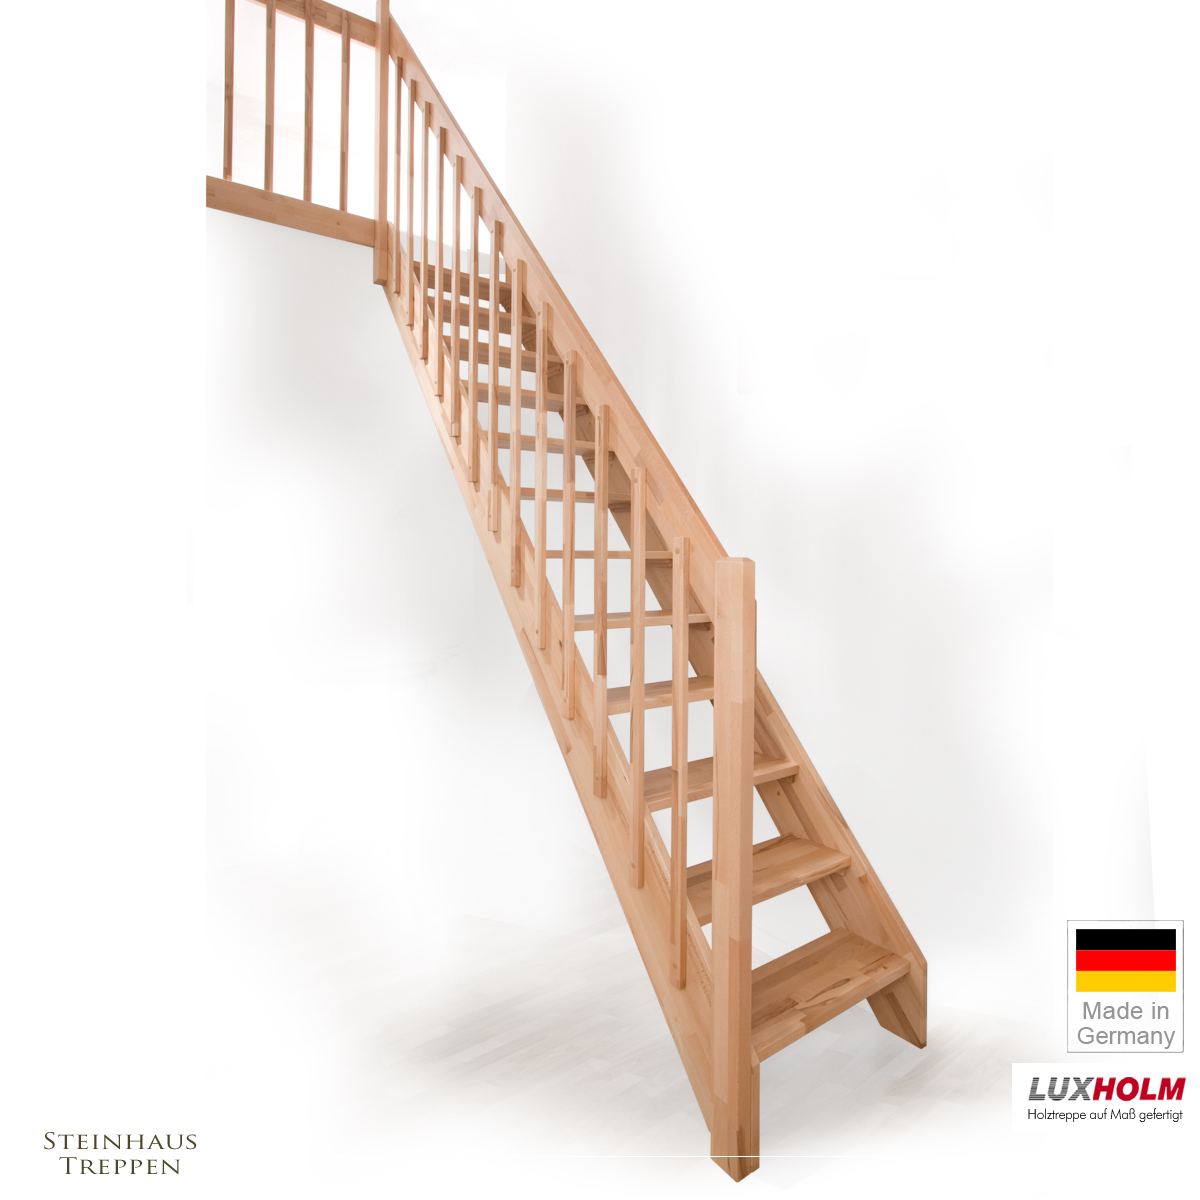 holztreppe buche mit gel nder in treppenbreite 75 cm modell rh n mit verstellbaren vollen. Black Bedroom Furniture Sets. Home Design Ideas